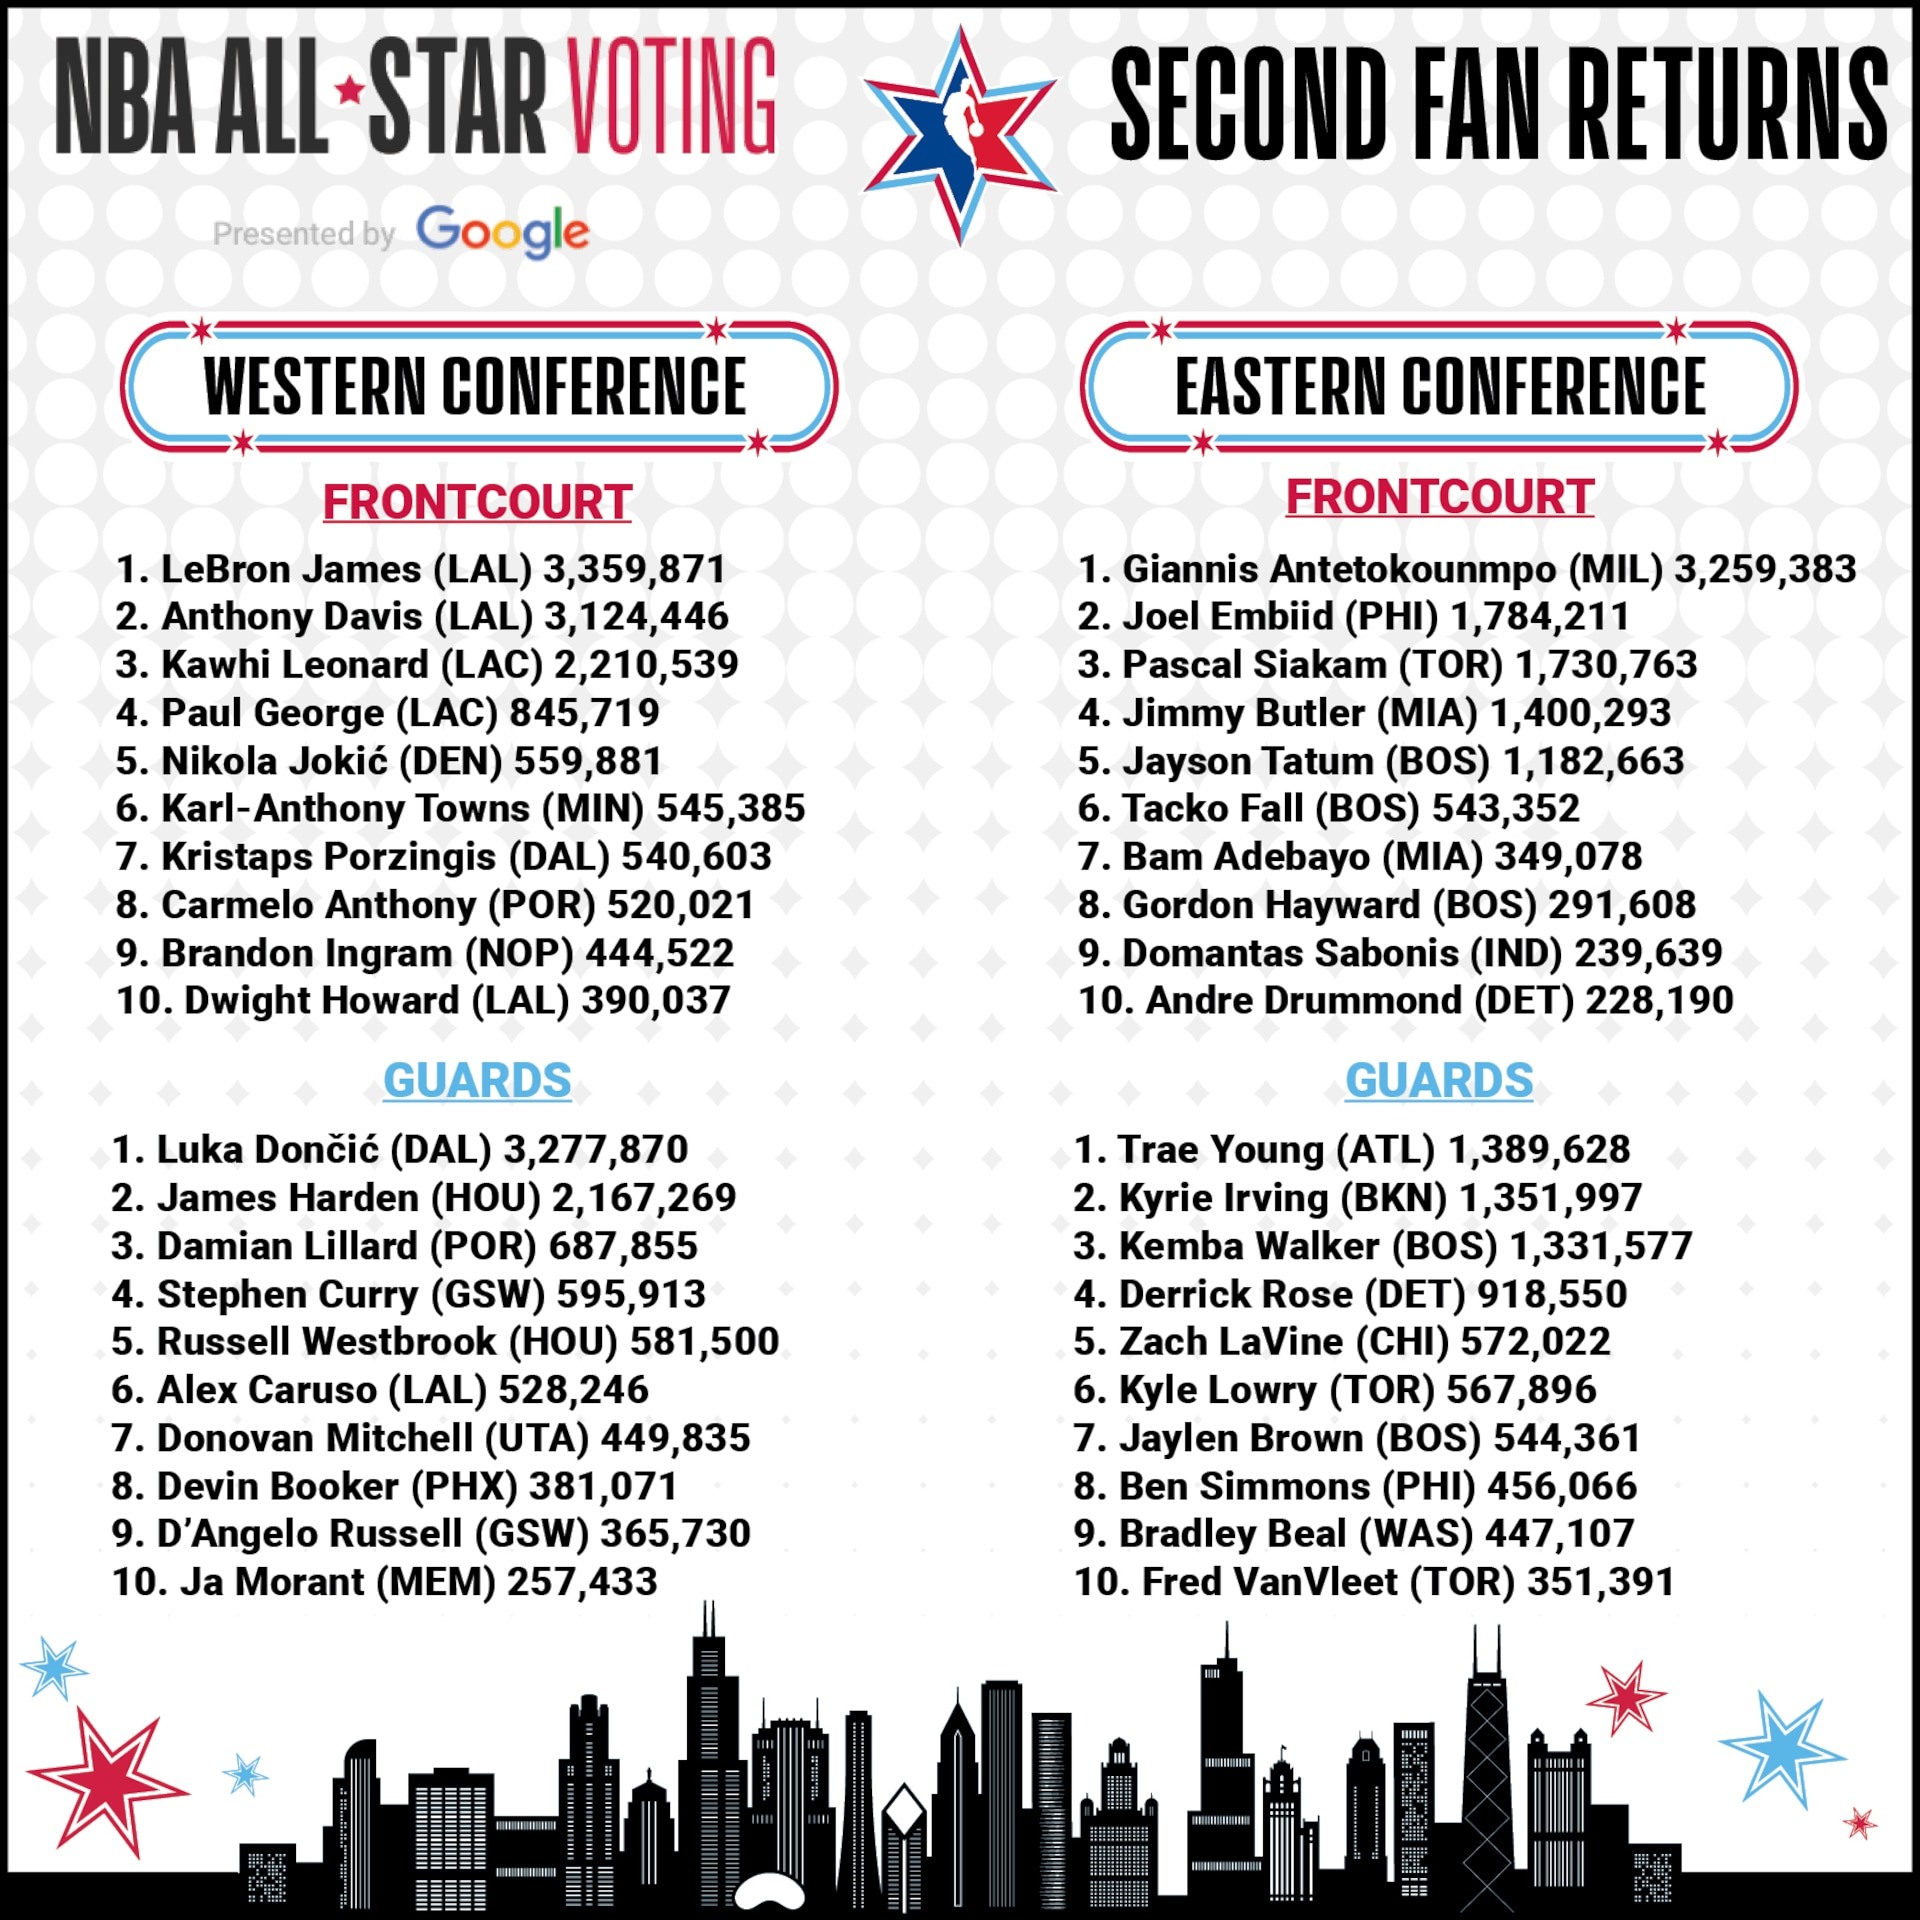 Lakers James Takes Overall Lead In Second Fan Returns Of